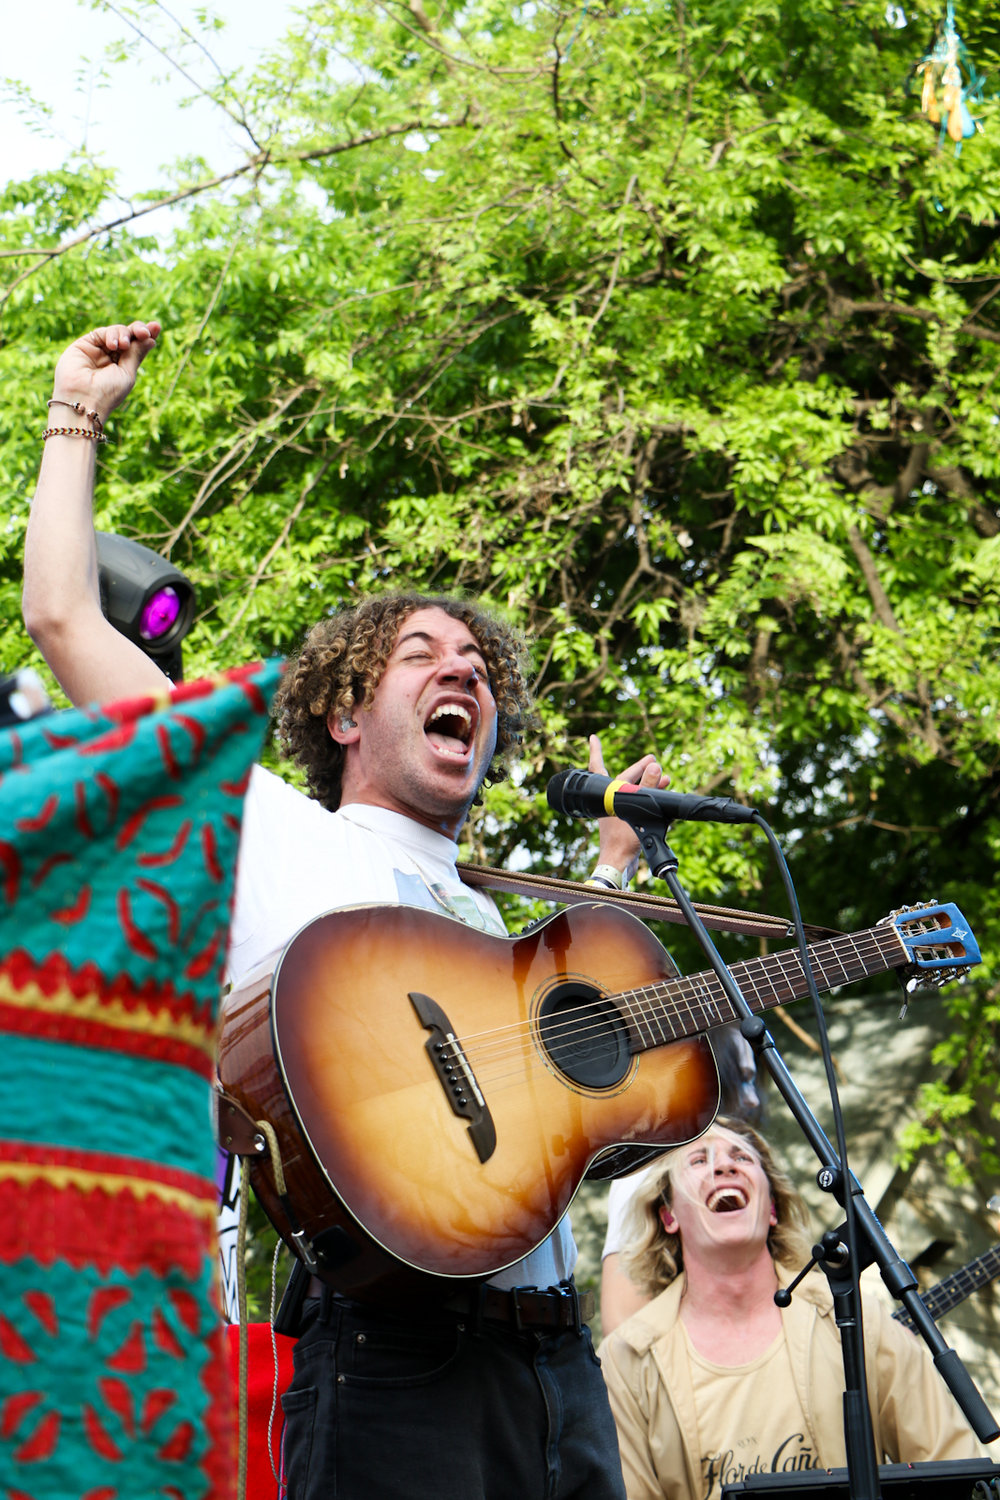 Duo from NYC, Lewis Del Mar, put on an exciting show at Feed The Beat.